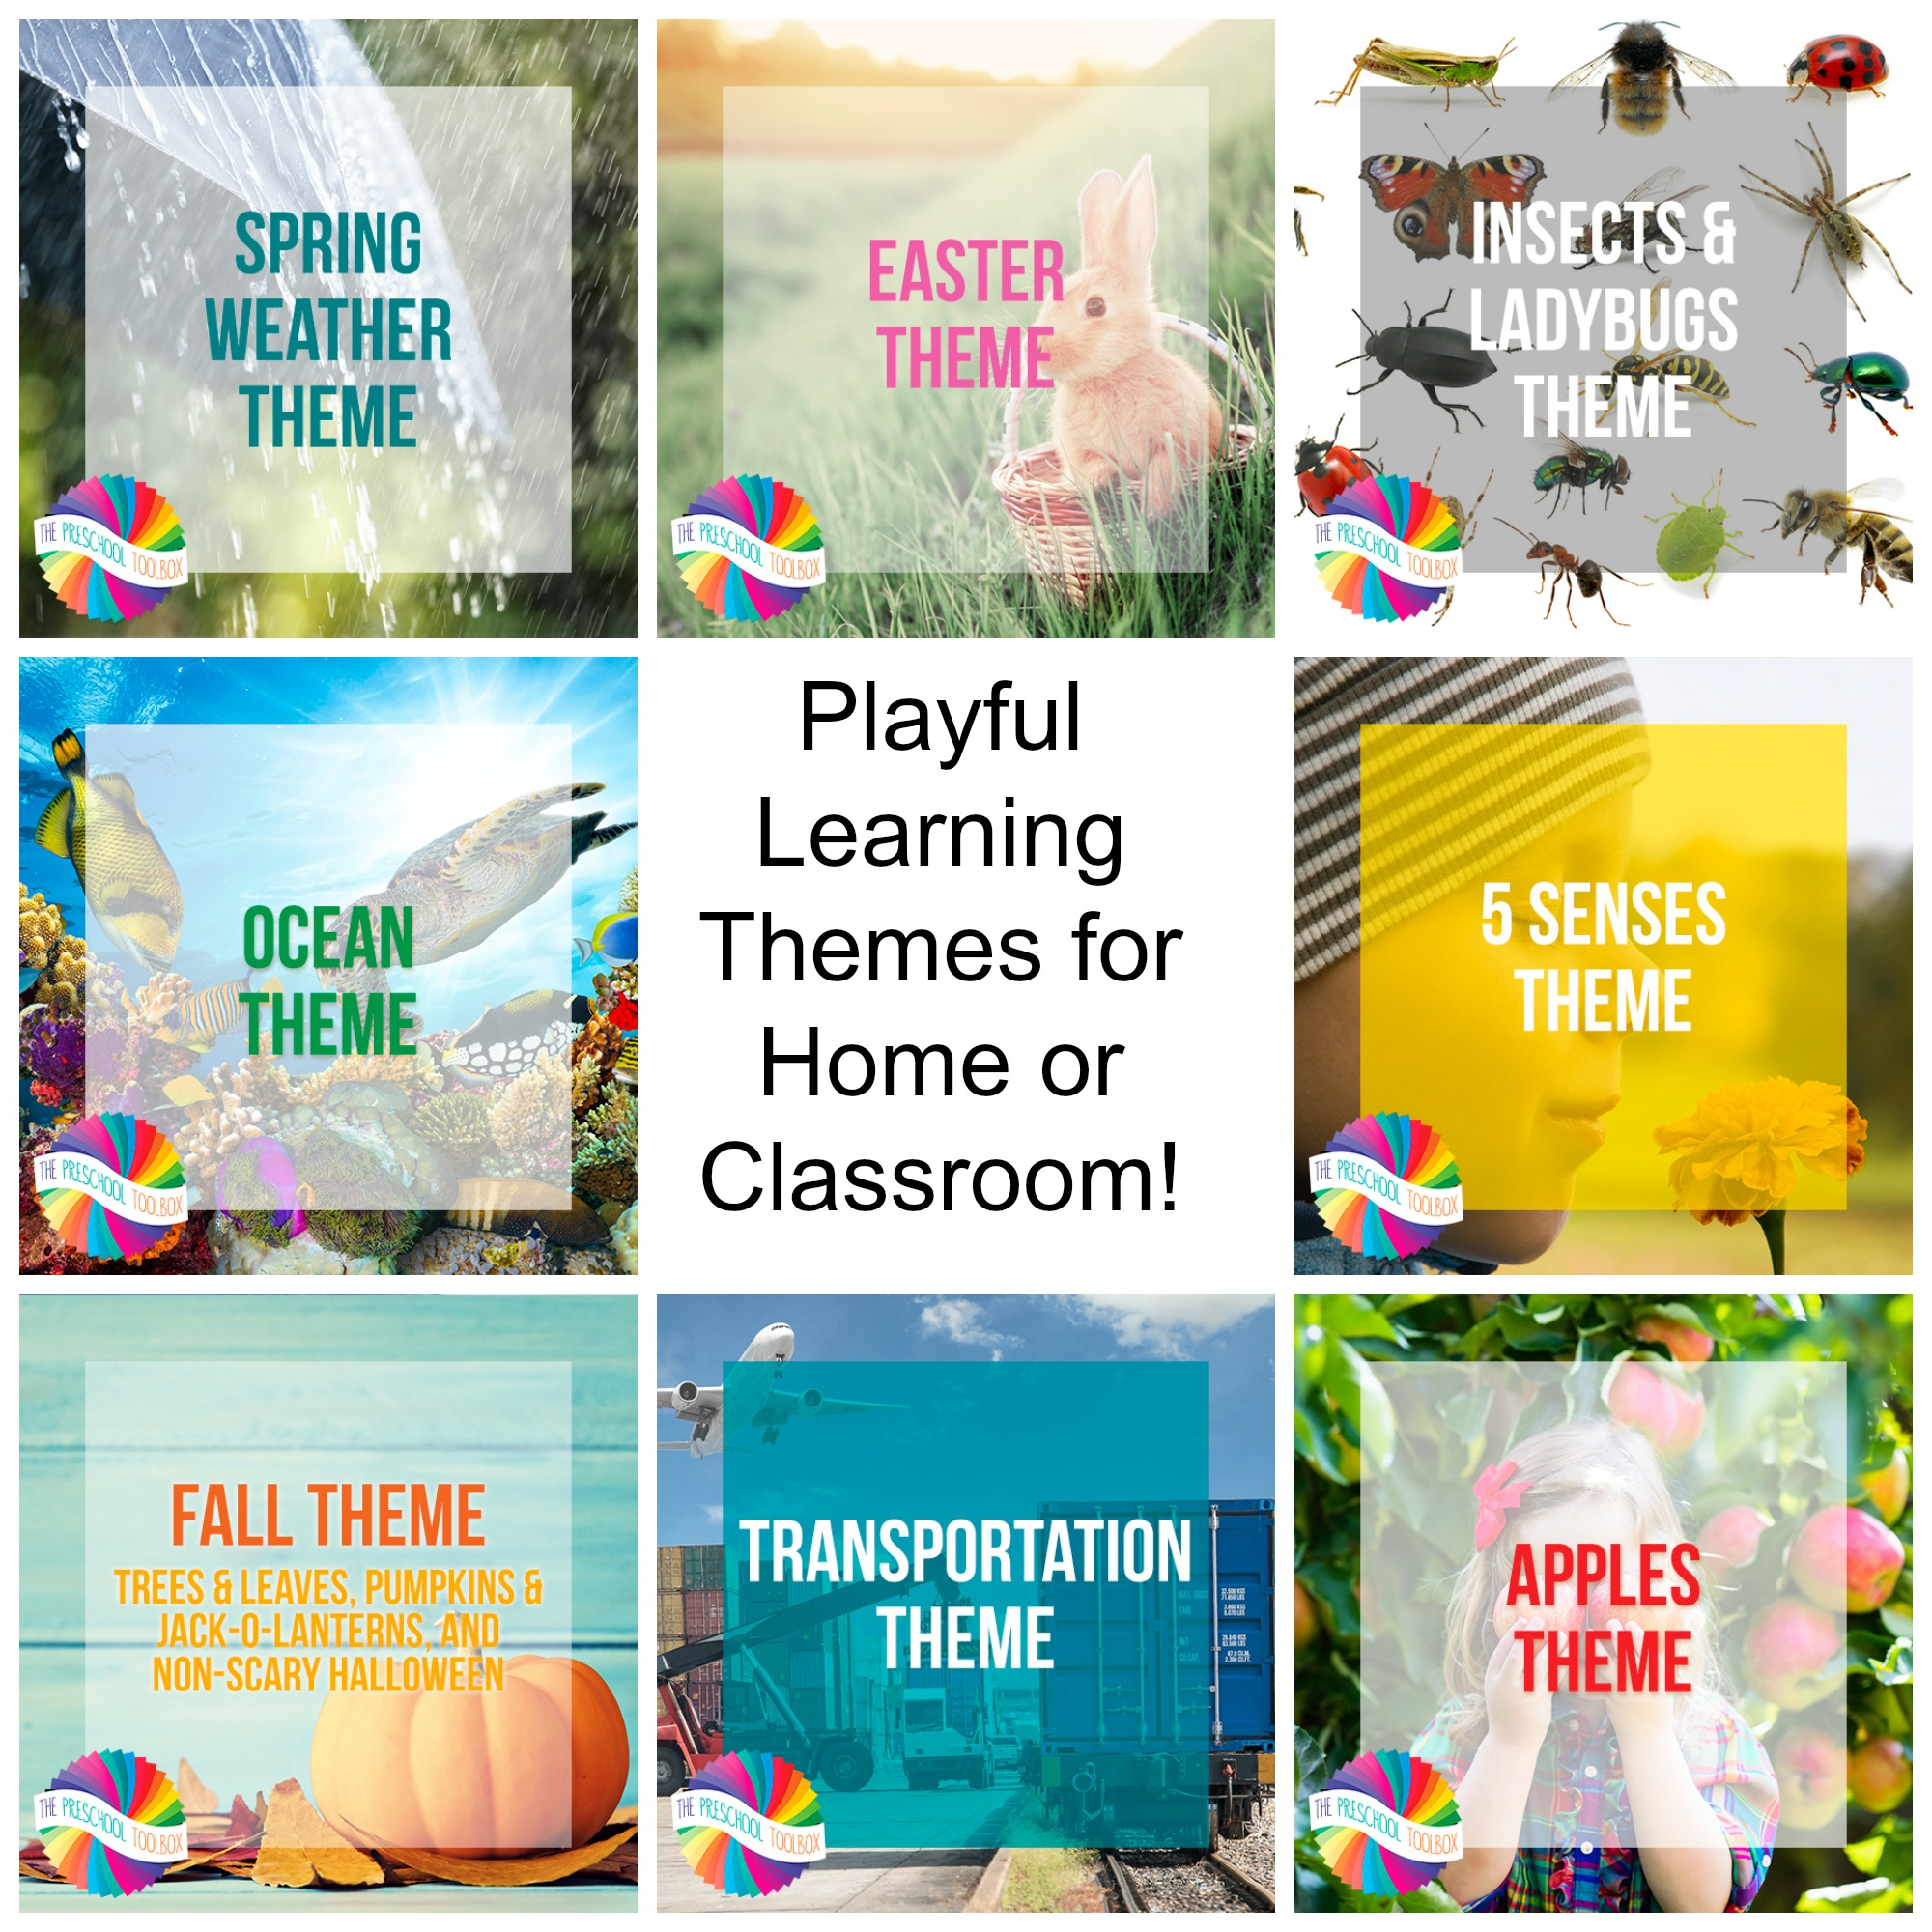 Learn through play with themes your preschoolers will love.